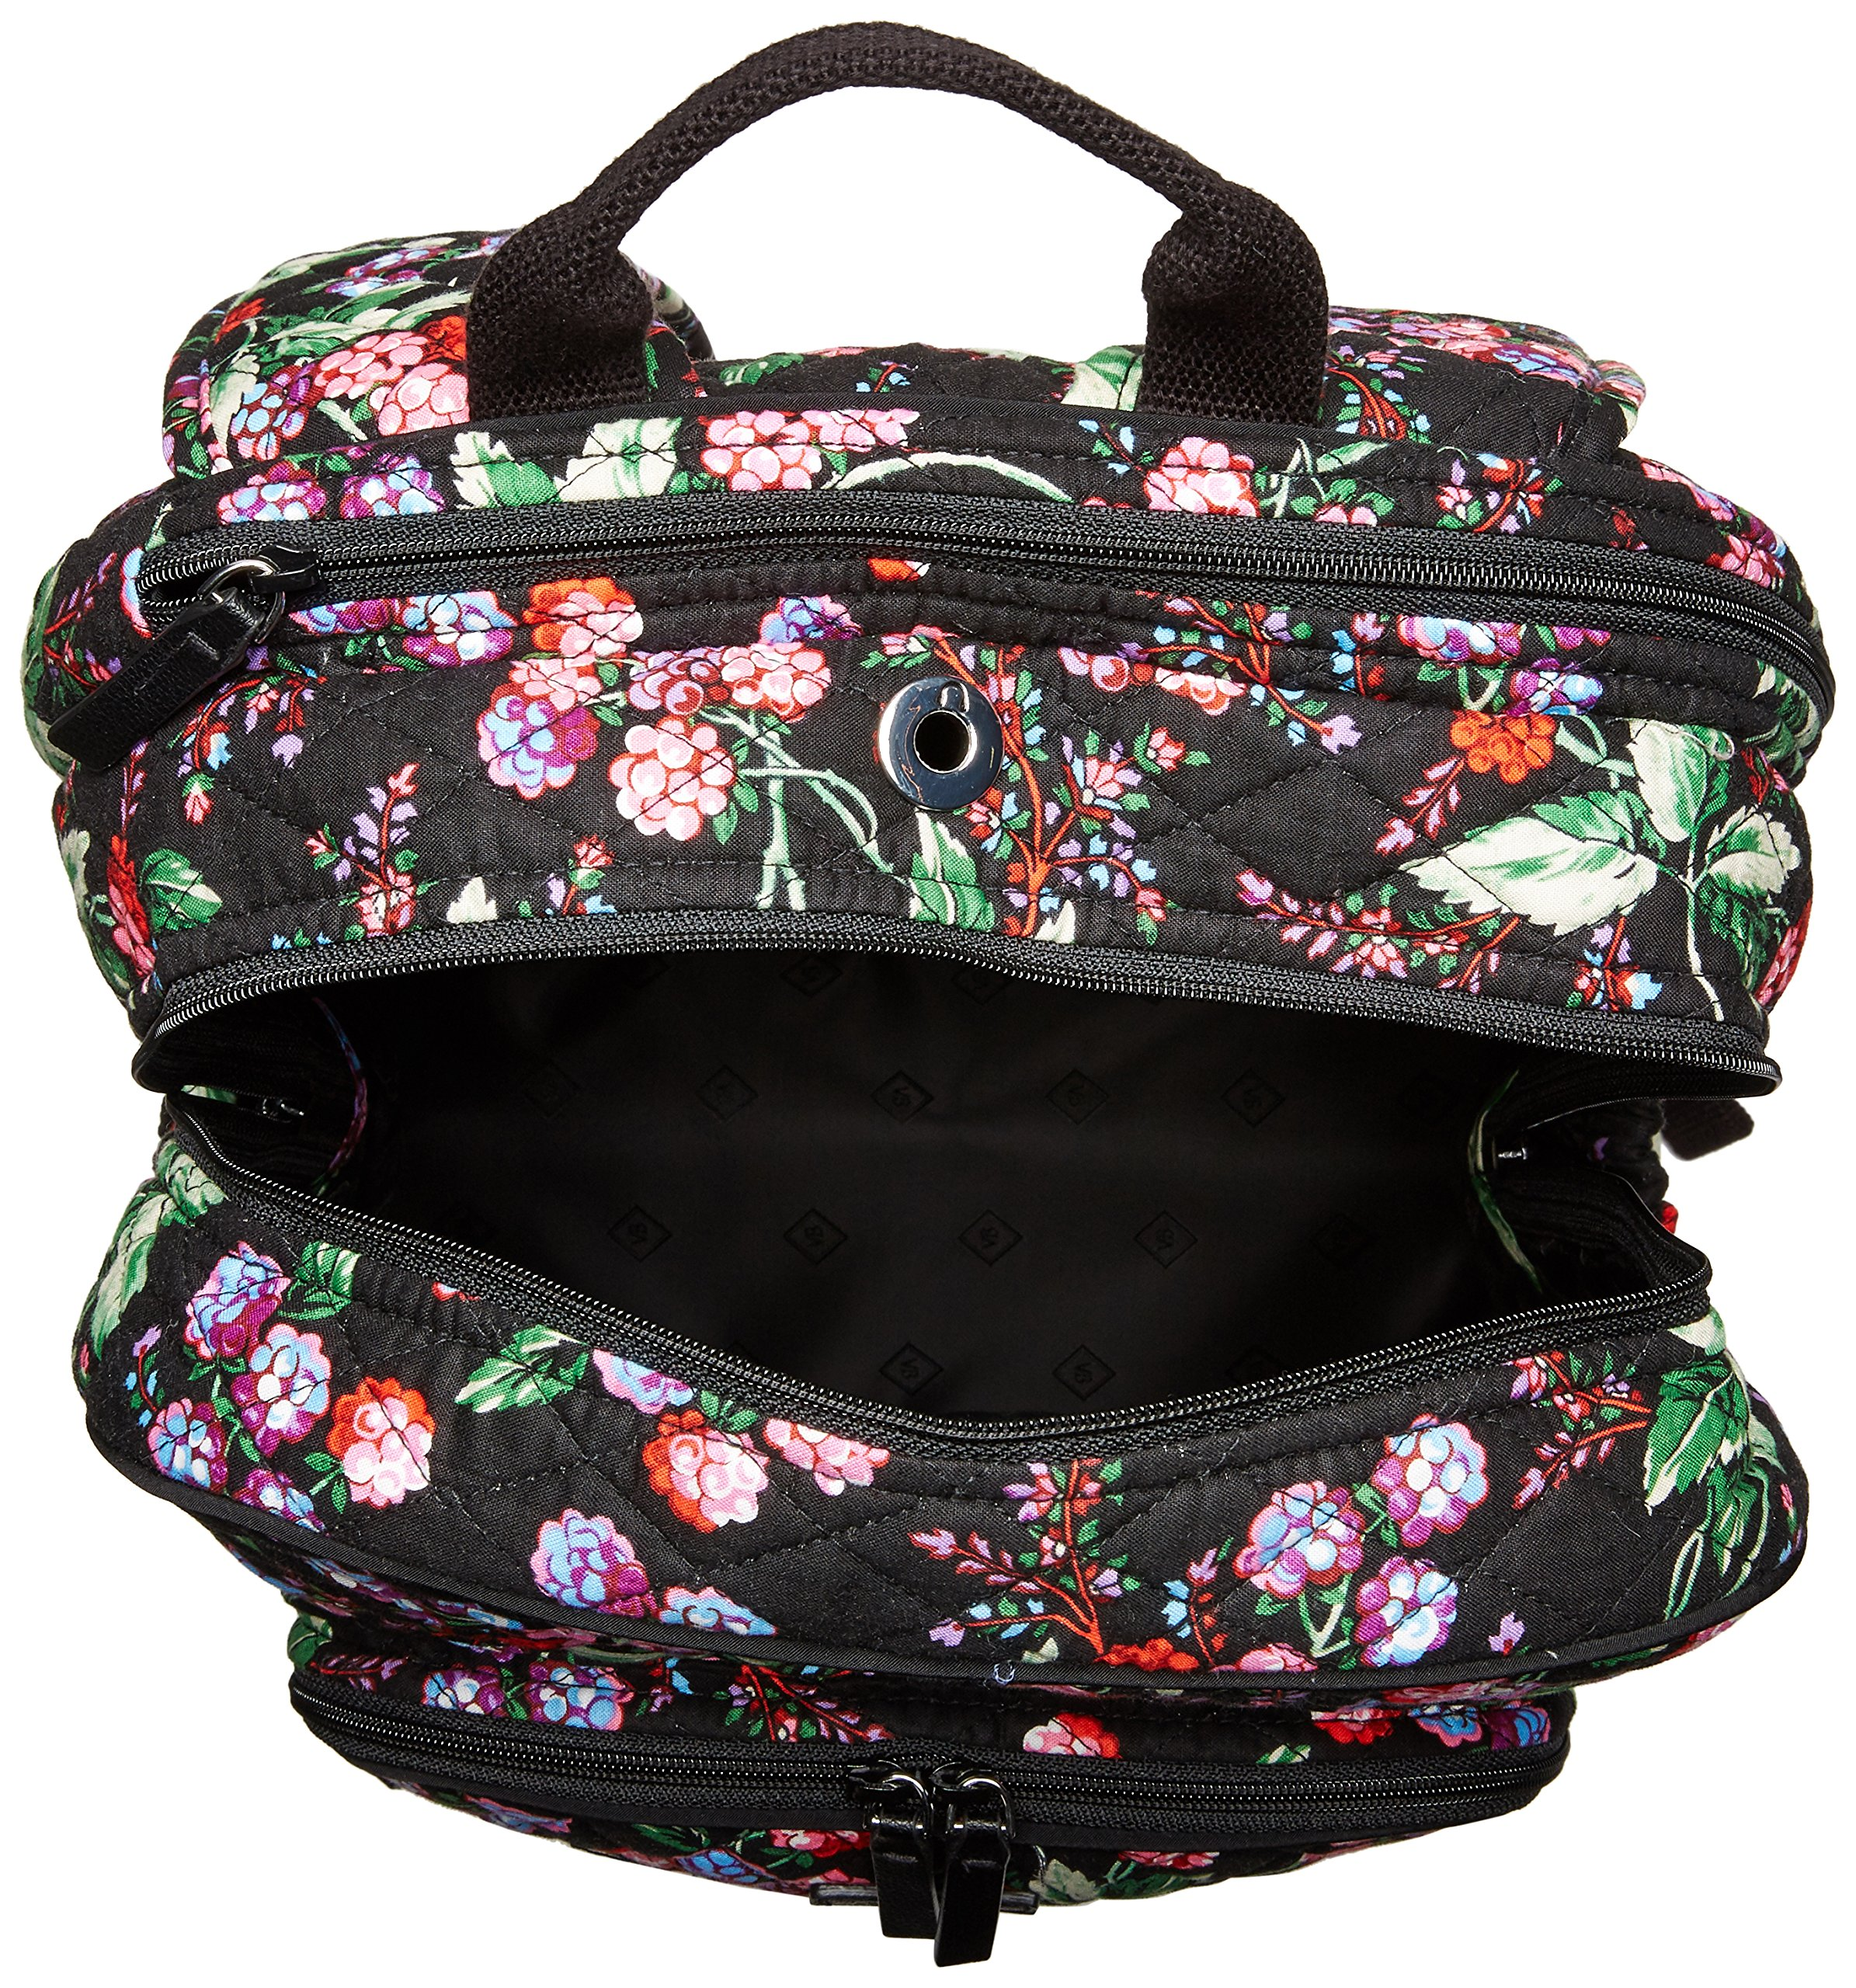 Vera Bradley Women's Campus Tech Backpack-Signature, Winter Berry by Vera Bradley (Image #3)